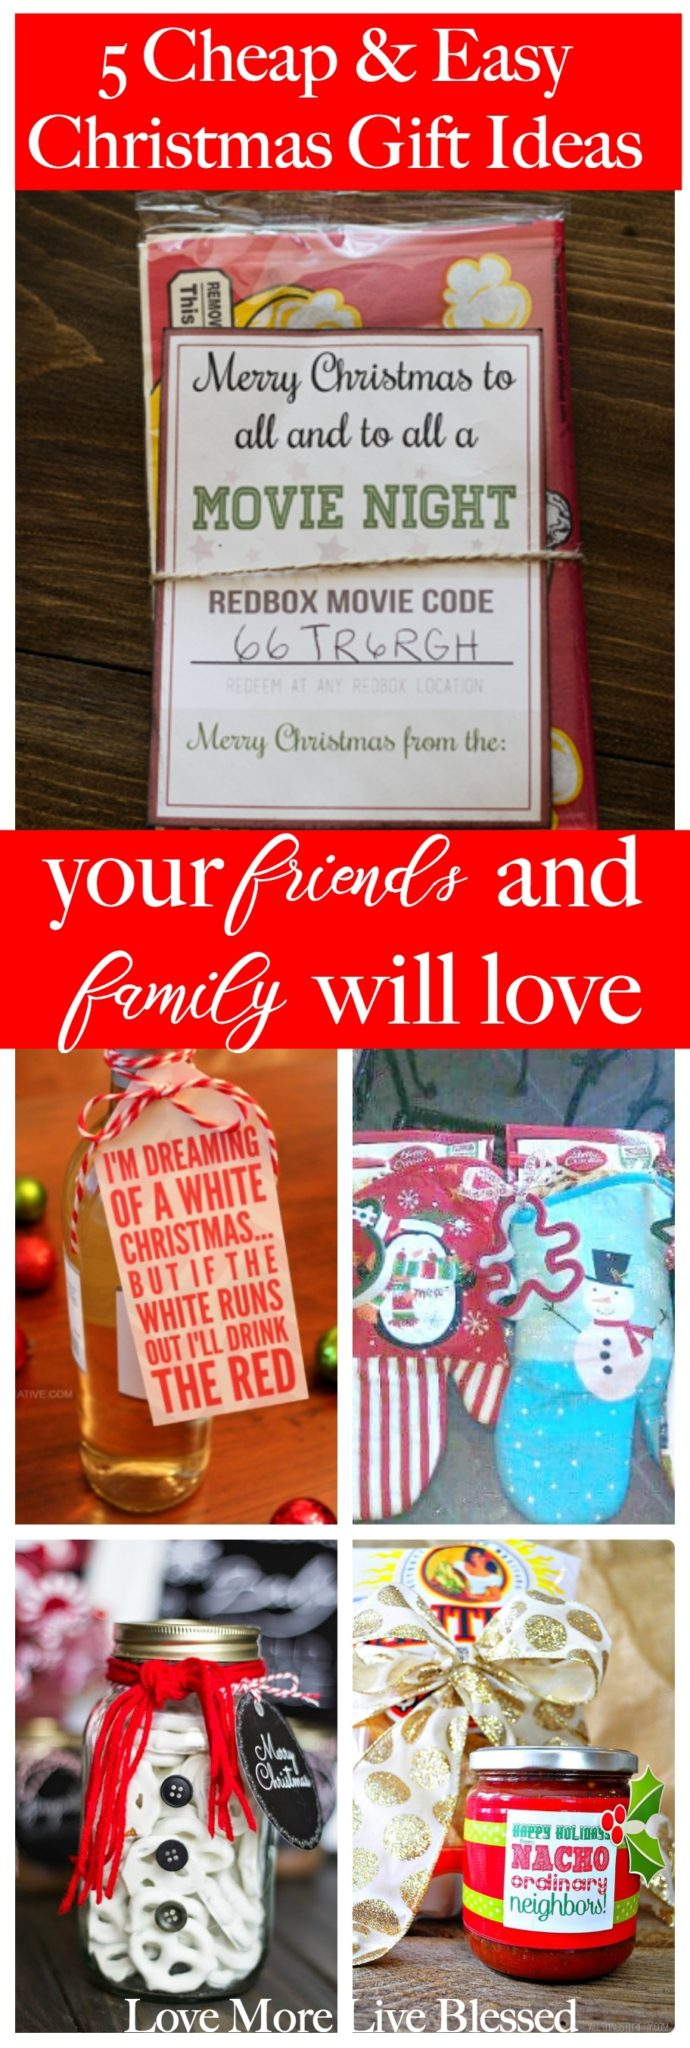 Here are the 5 cheap and easy christmas gift ideas for friends and family. You can gift these to co-workers or mail the popcorn and redbox code to out of state family members. I love how simple and fun these christmas gift ideas are! DIY Christmas, christmas gifts for friends, easy christmas gifts